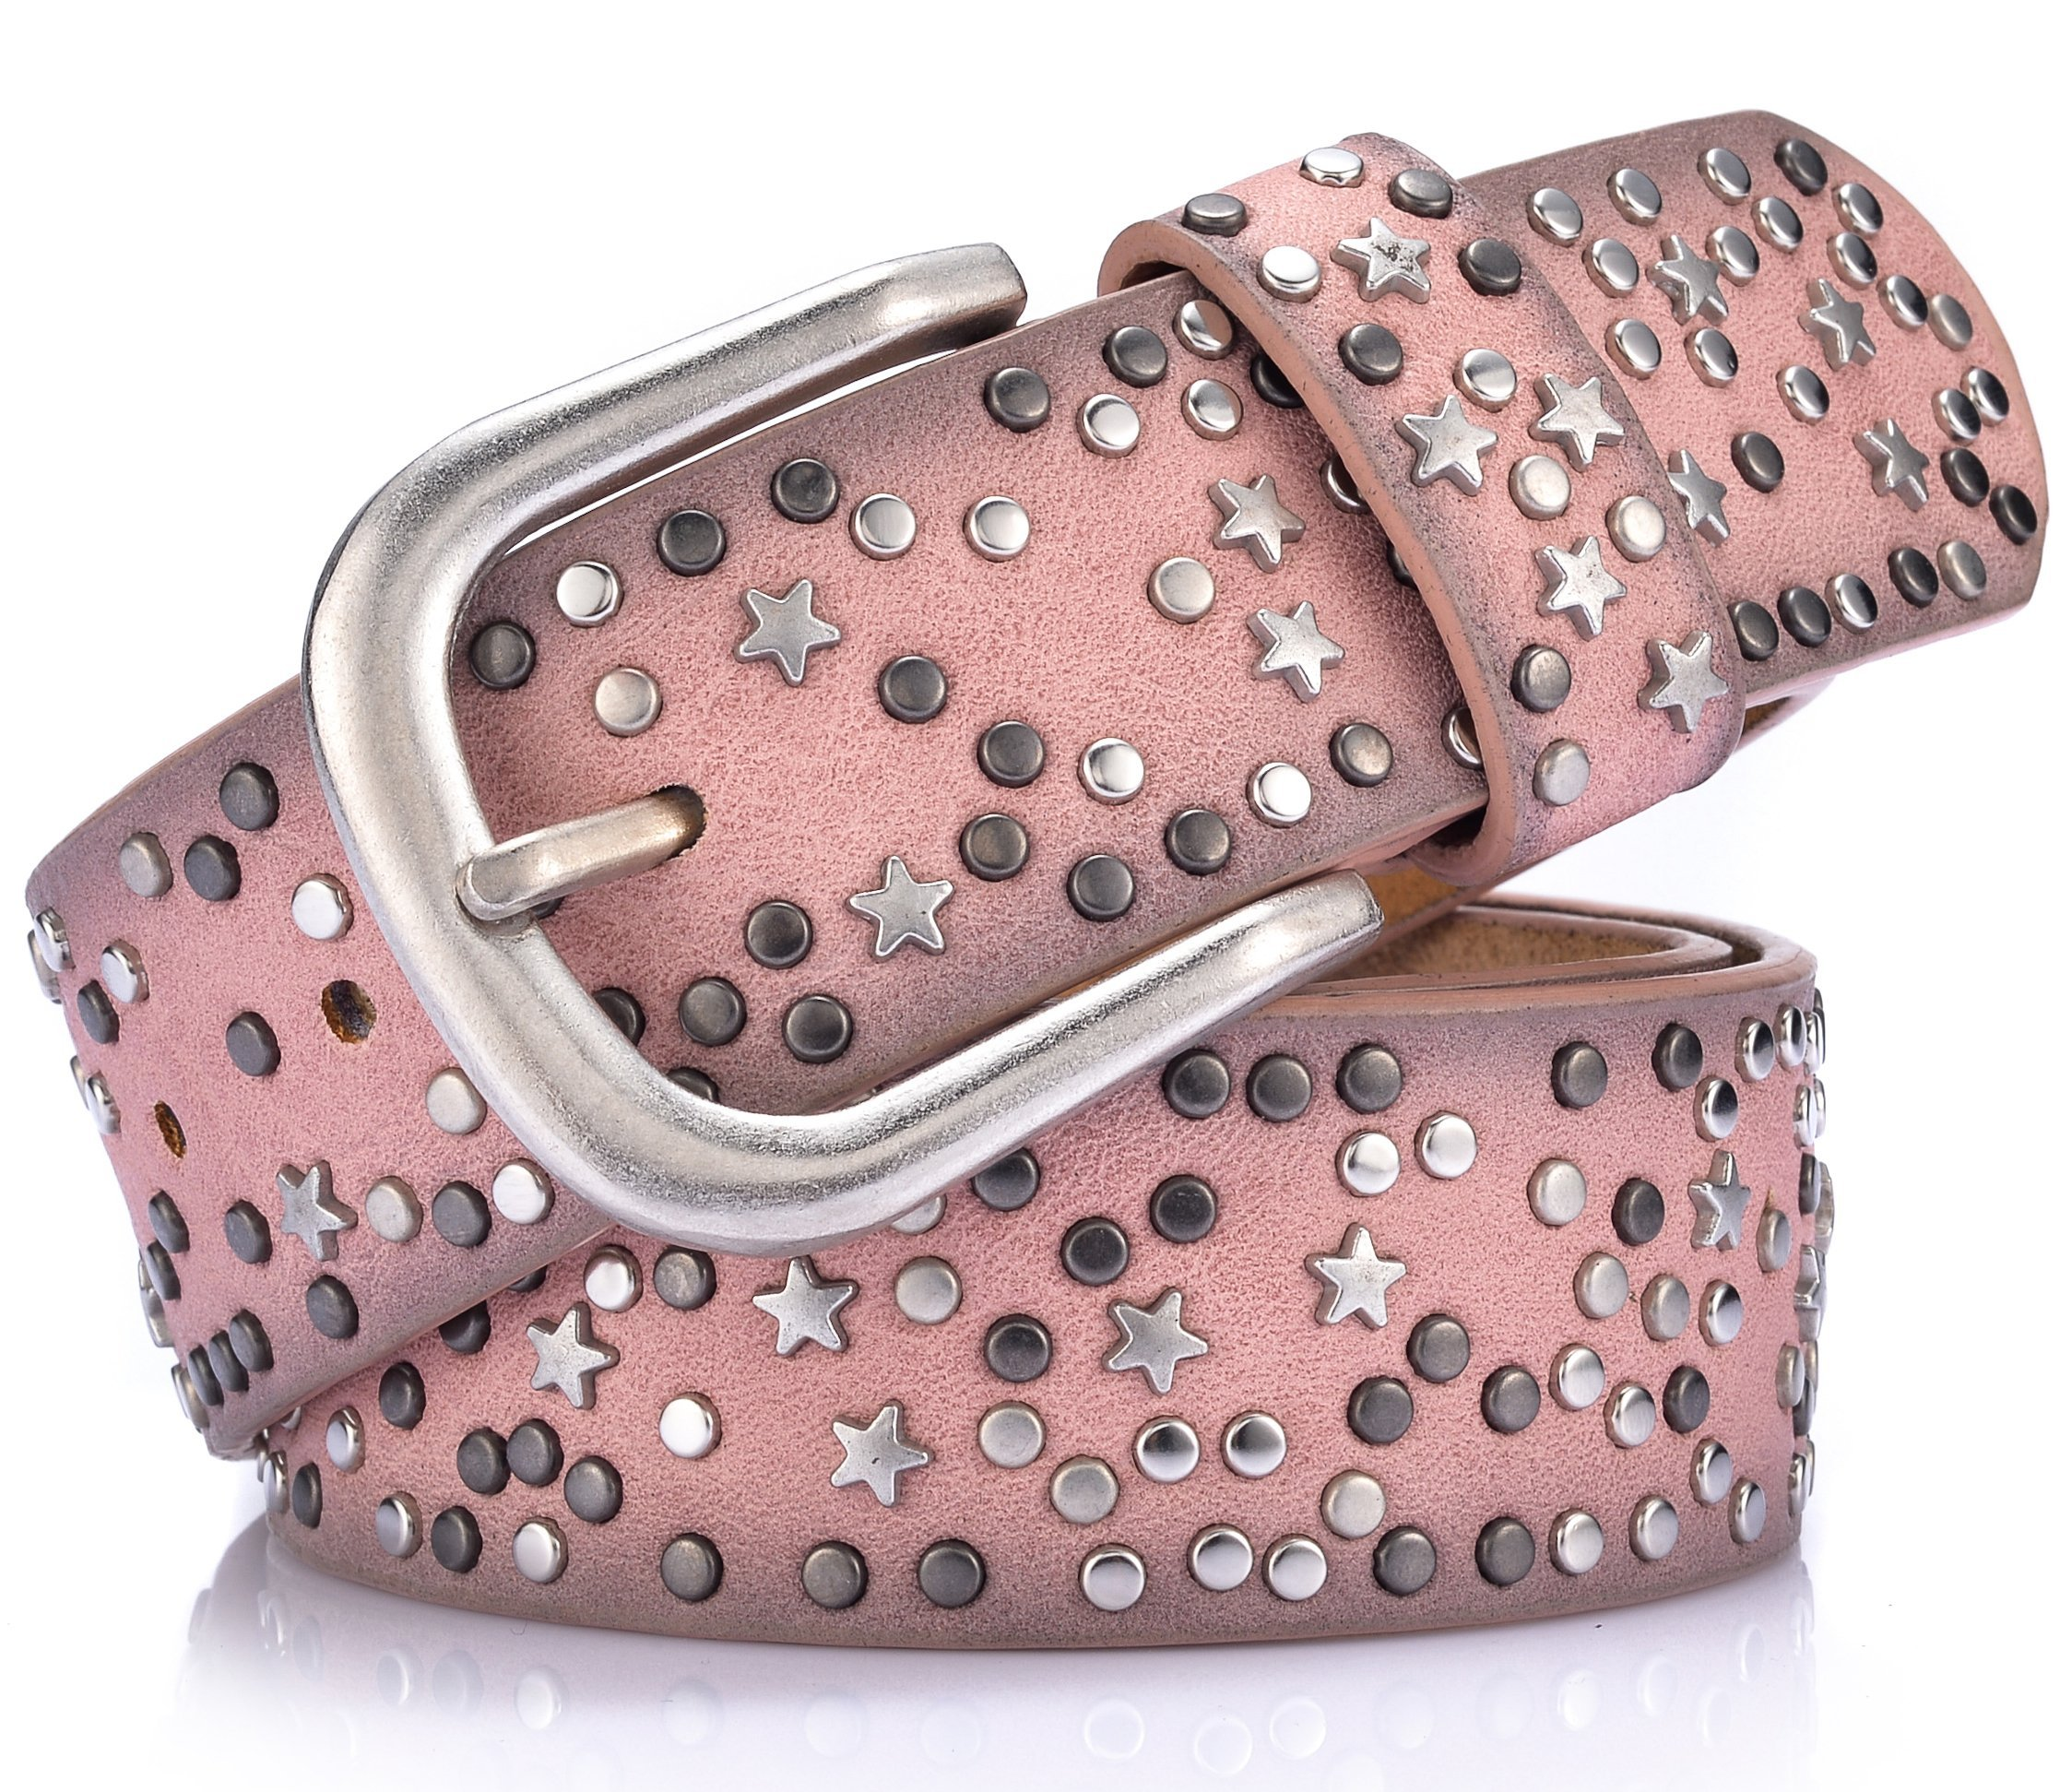 Ayli Women's Jean Belt, Stars Rivets Punk Rock Handcrafted Genuine Leather Belt, Free Gift Box, Pink, Fits Waist 31'' to 32'' (US Pants Size 10-12), bt6b507pk100